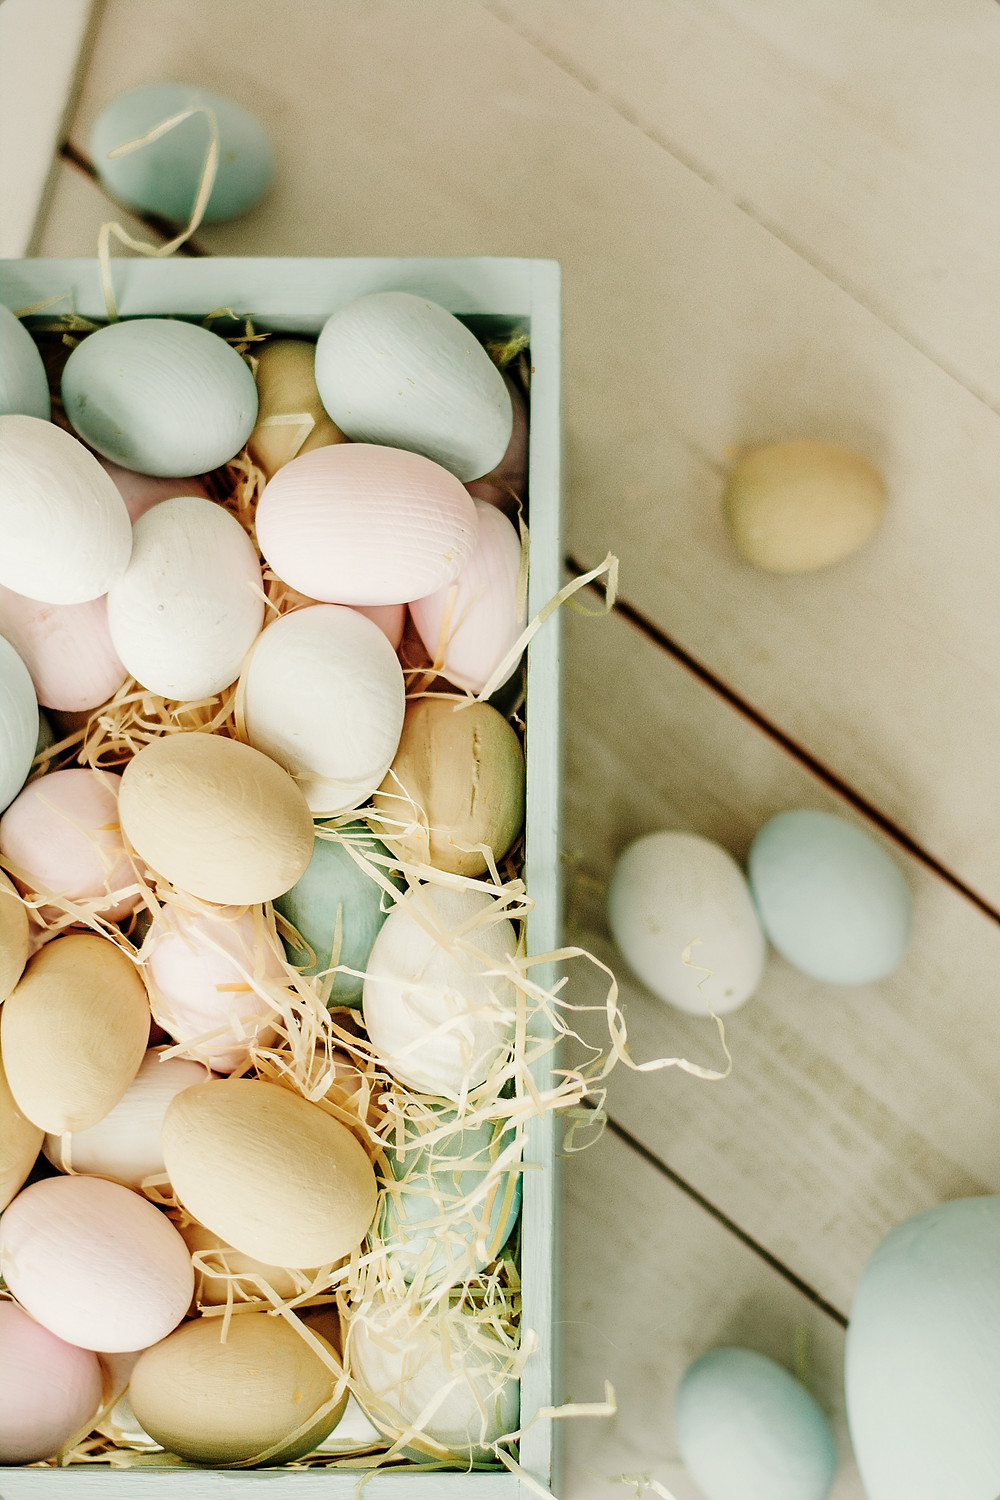 Aerial photo of pastel coloured eggs with straw in pastel blue box. Pastel coloured eggs scatted around outside of box